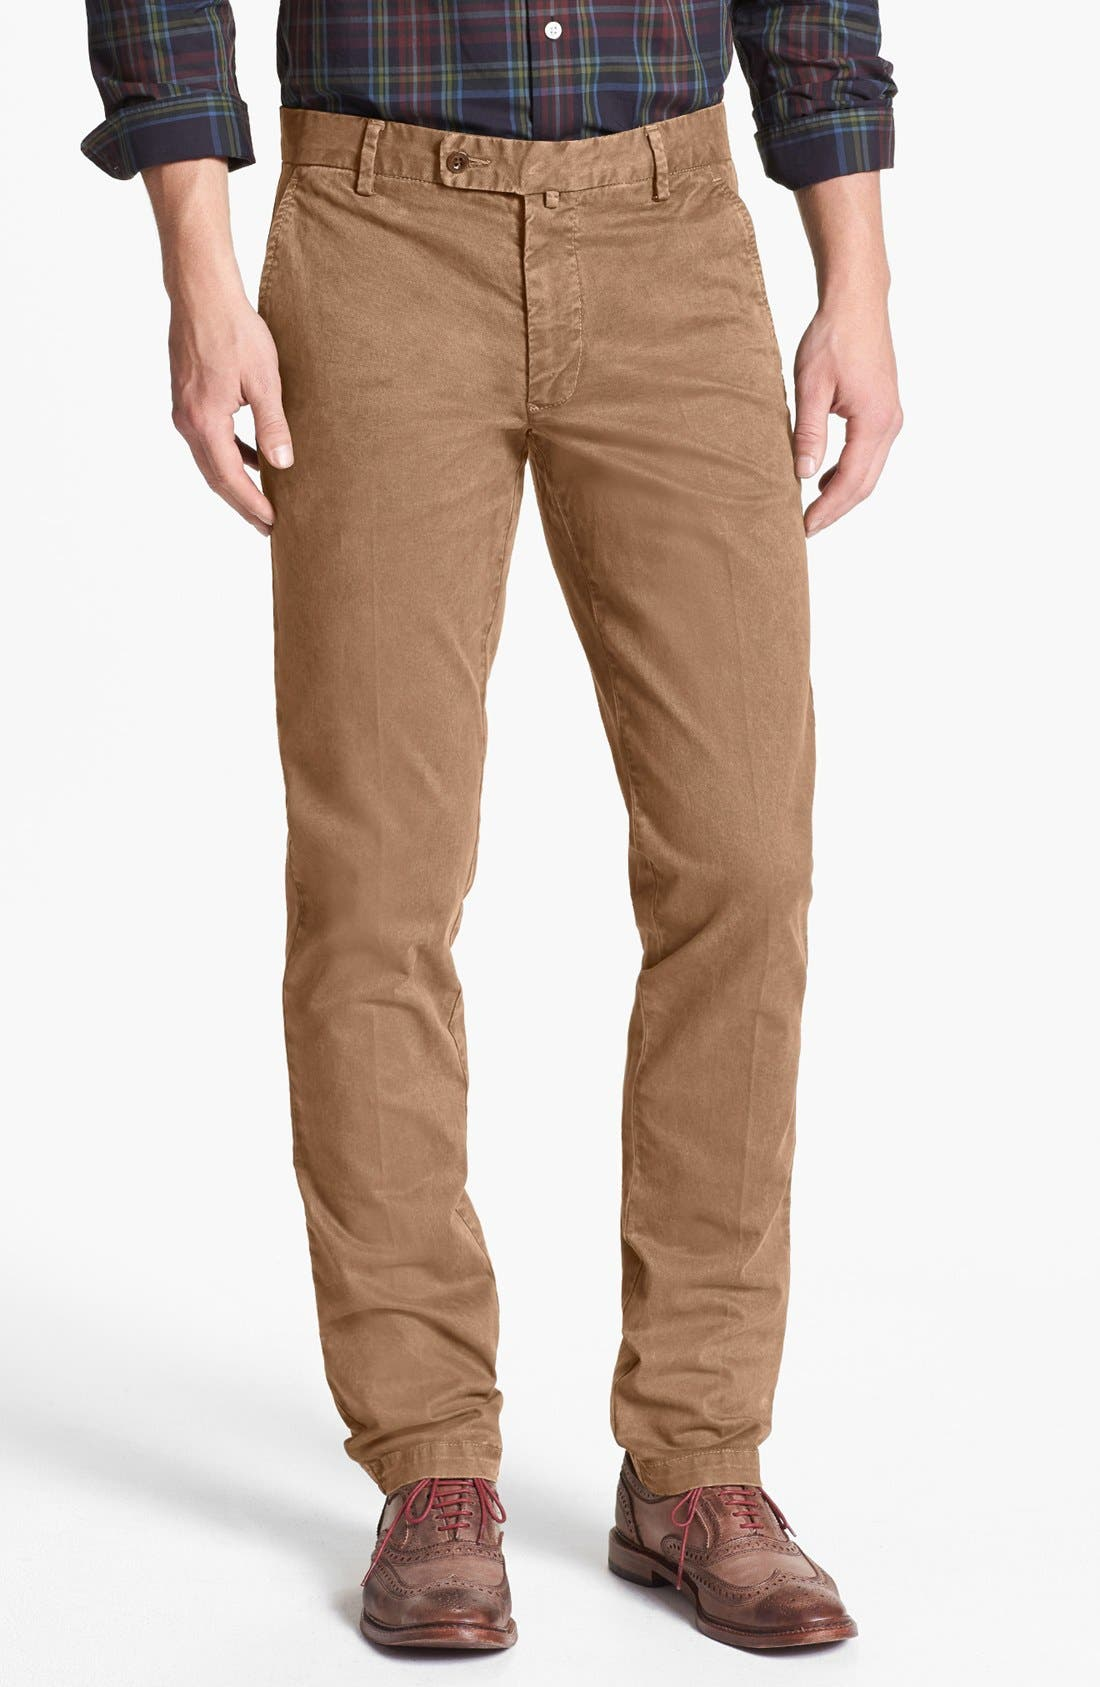 Alternate Image 1 Selected - Gant 'Butter' Twill Chinos